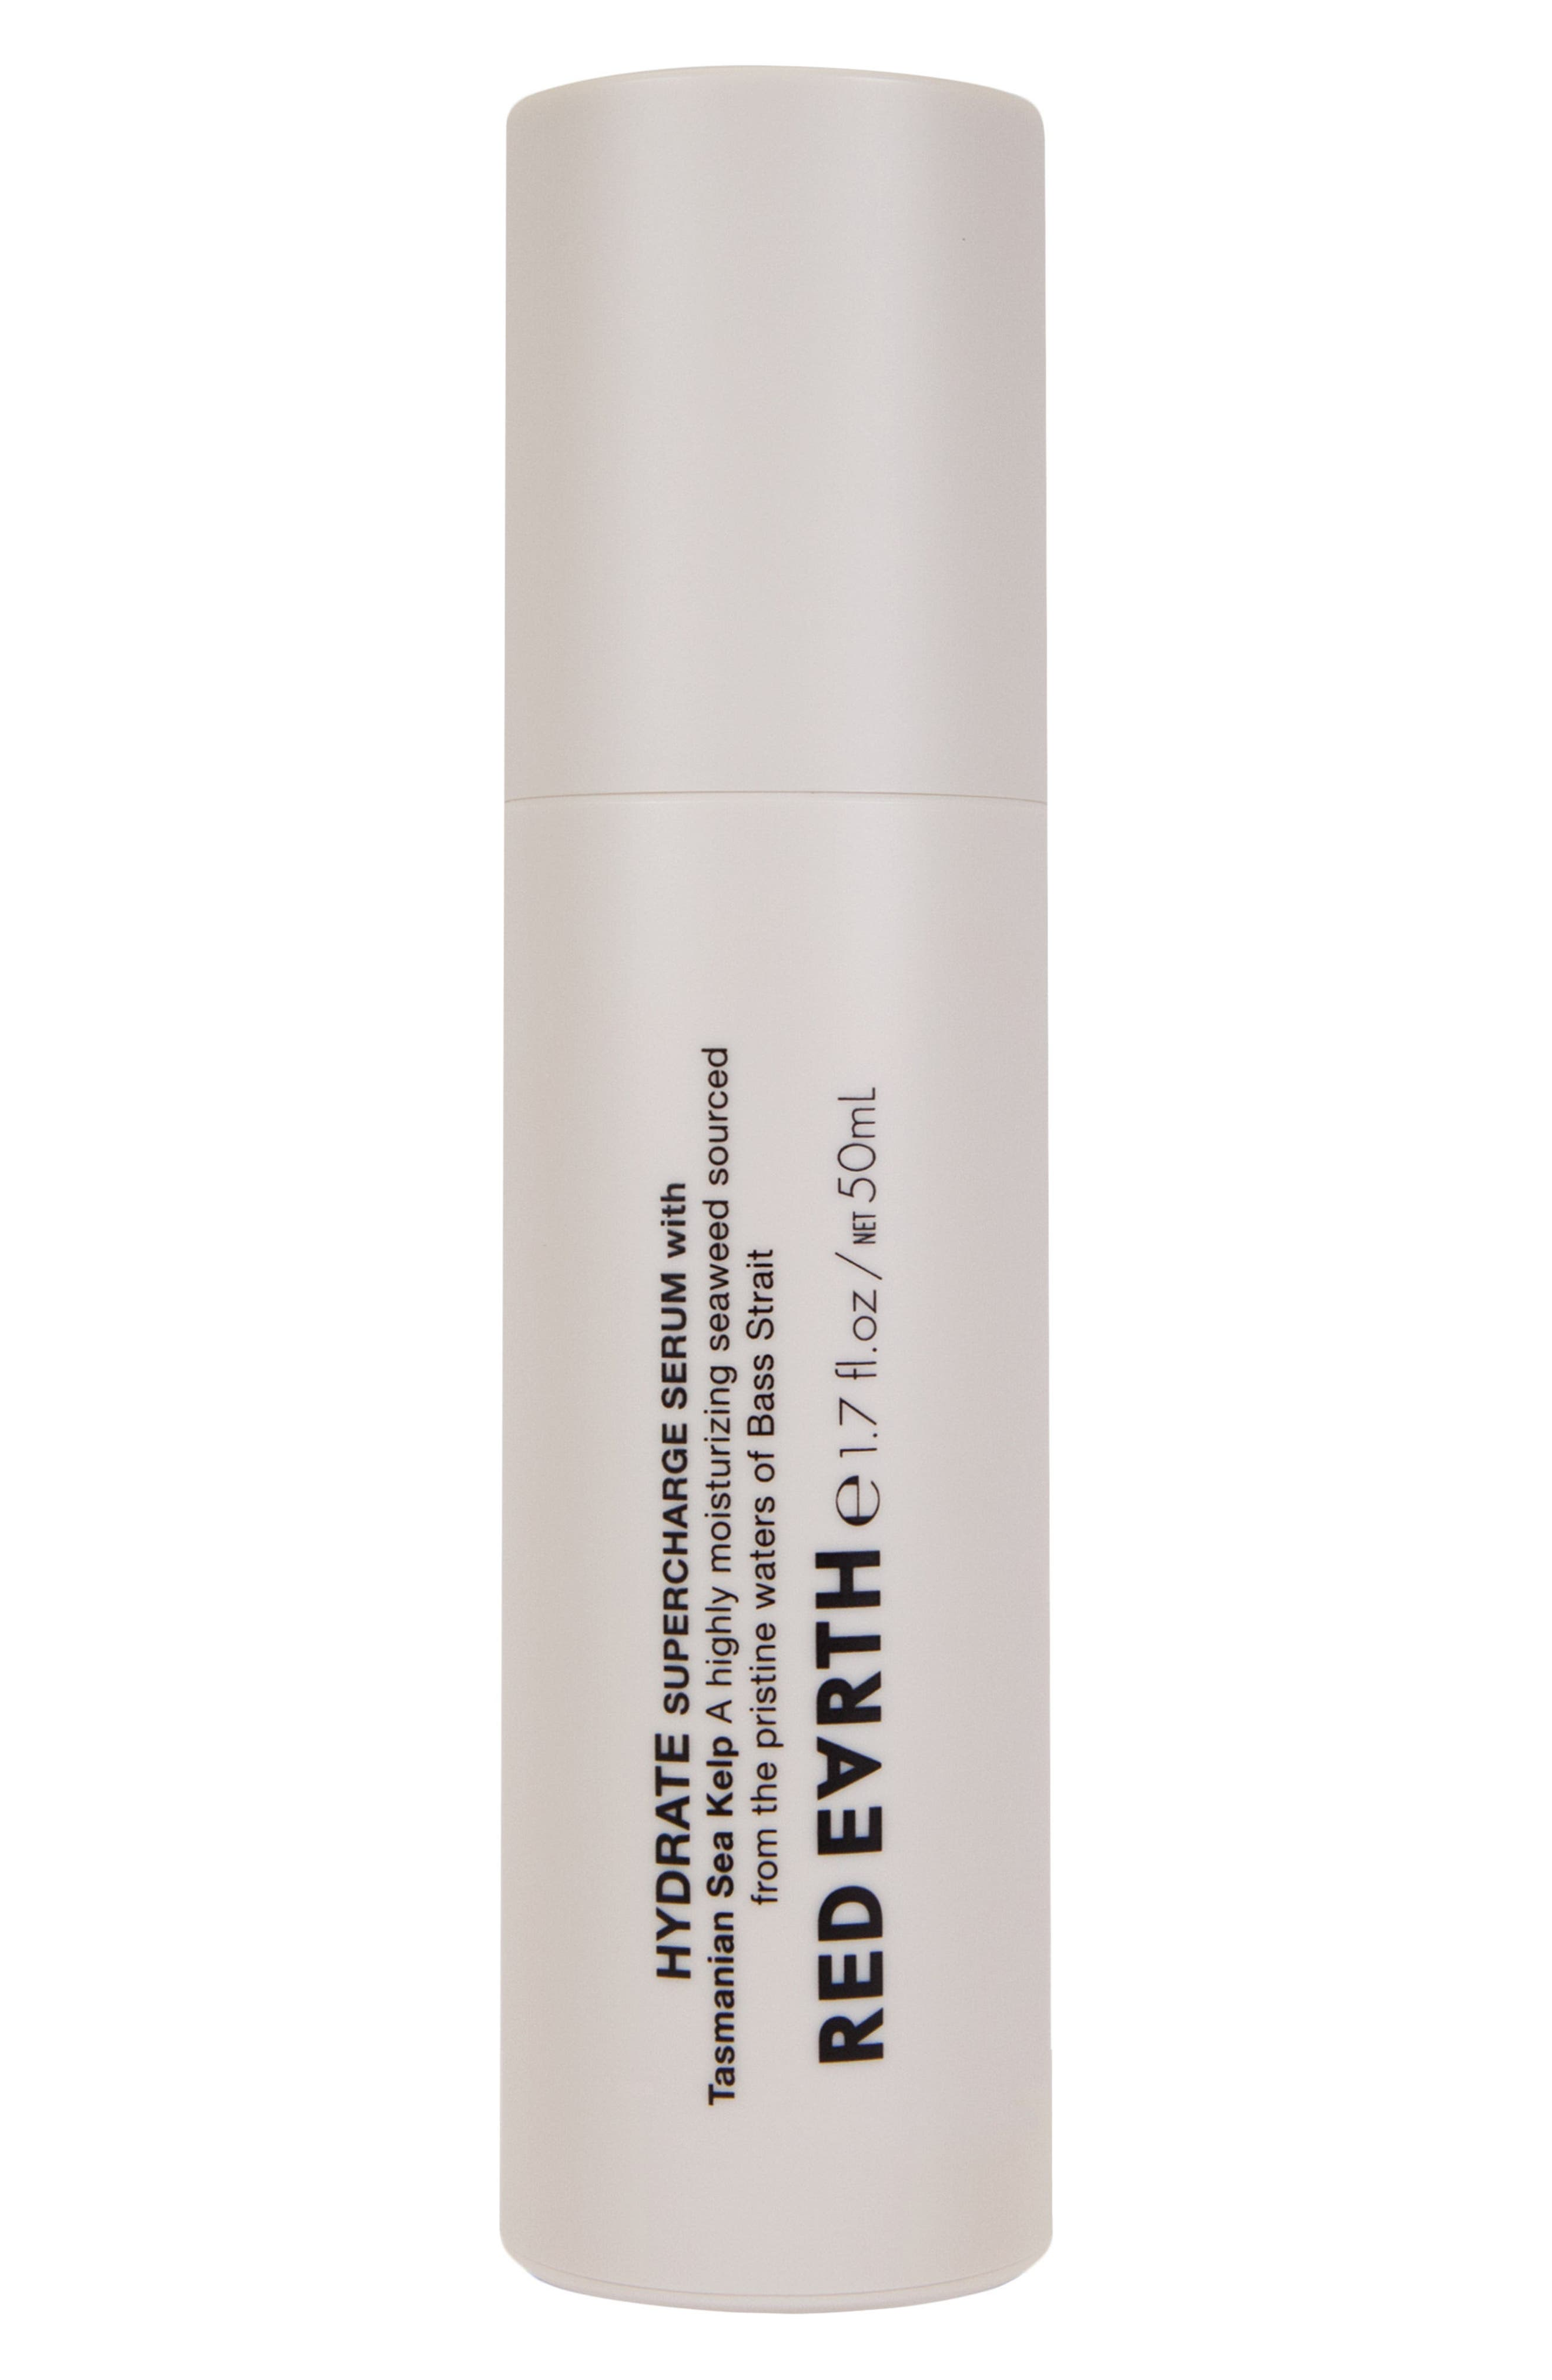 Hydrate Supercharge Serum,                             Main thumbnail 1, color,                             000